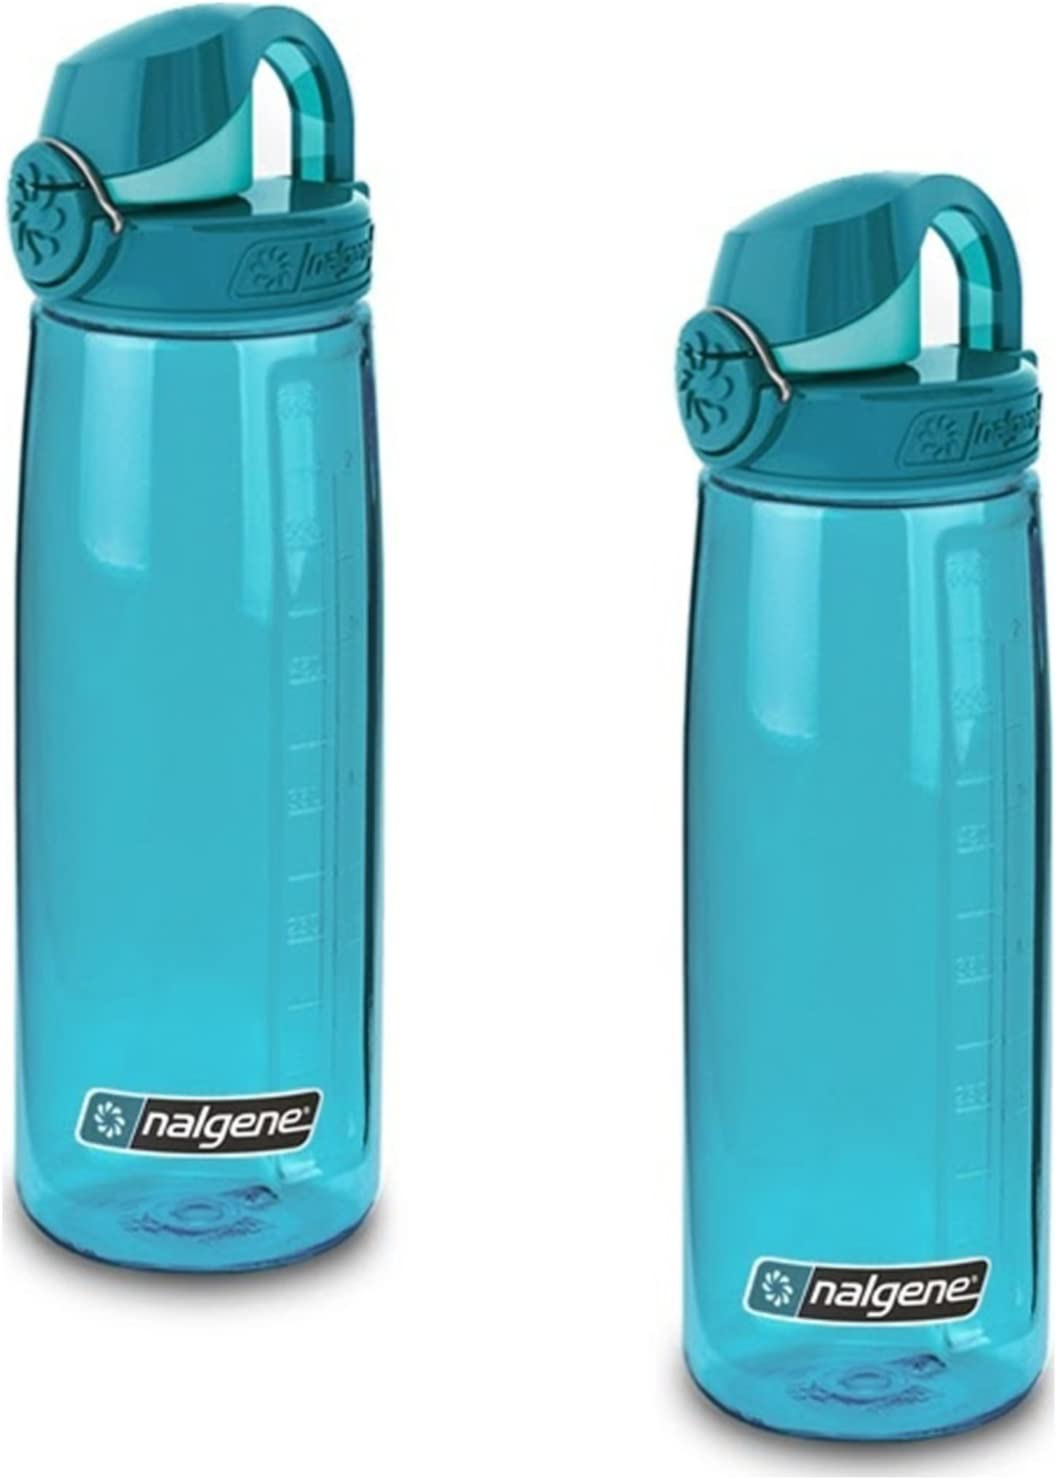 NEW Nalgene Tritan OTF Water Bottle 24oz Clear with Blue Cap